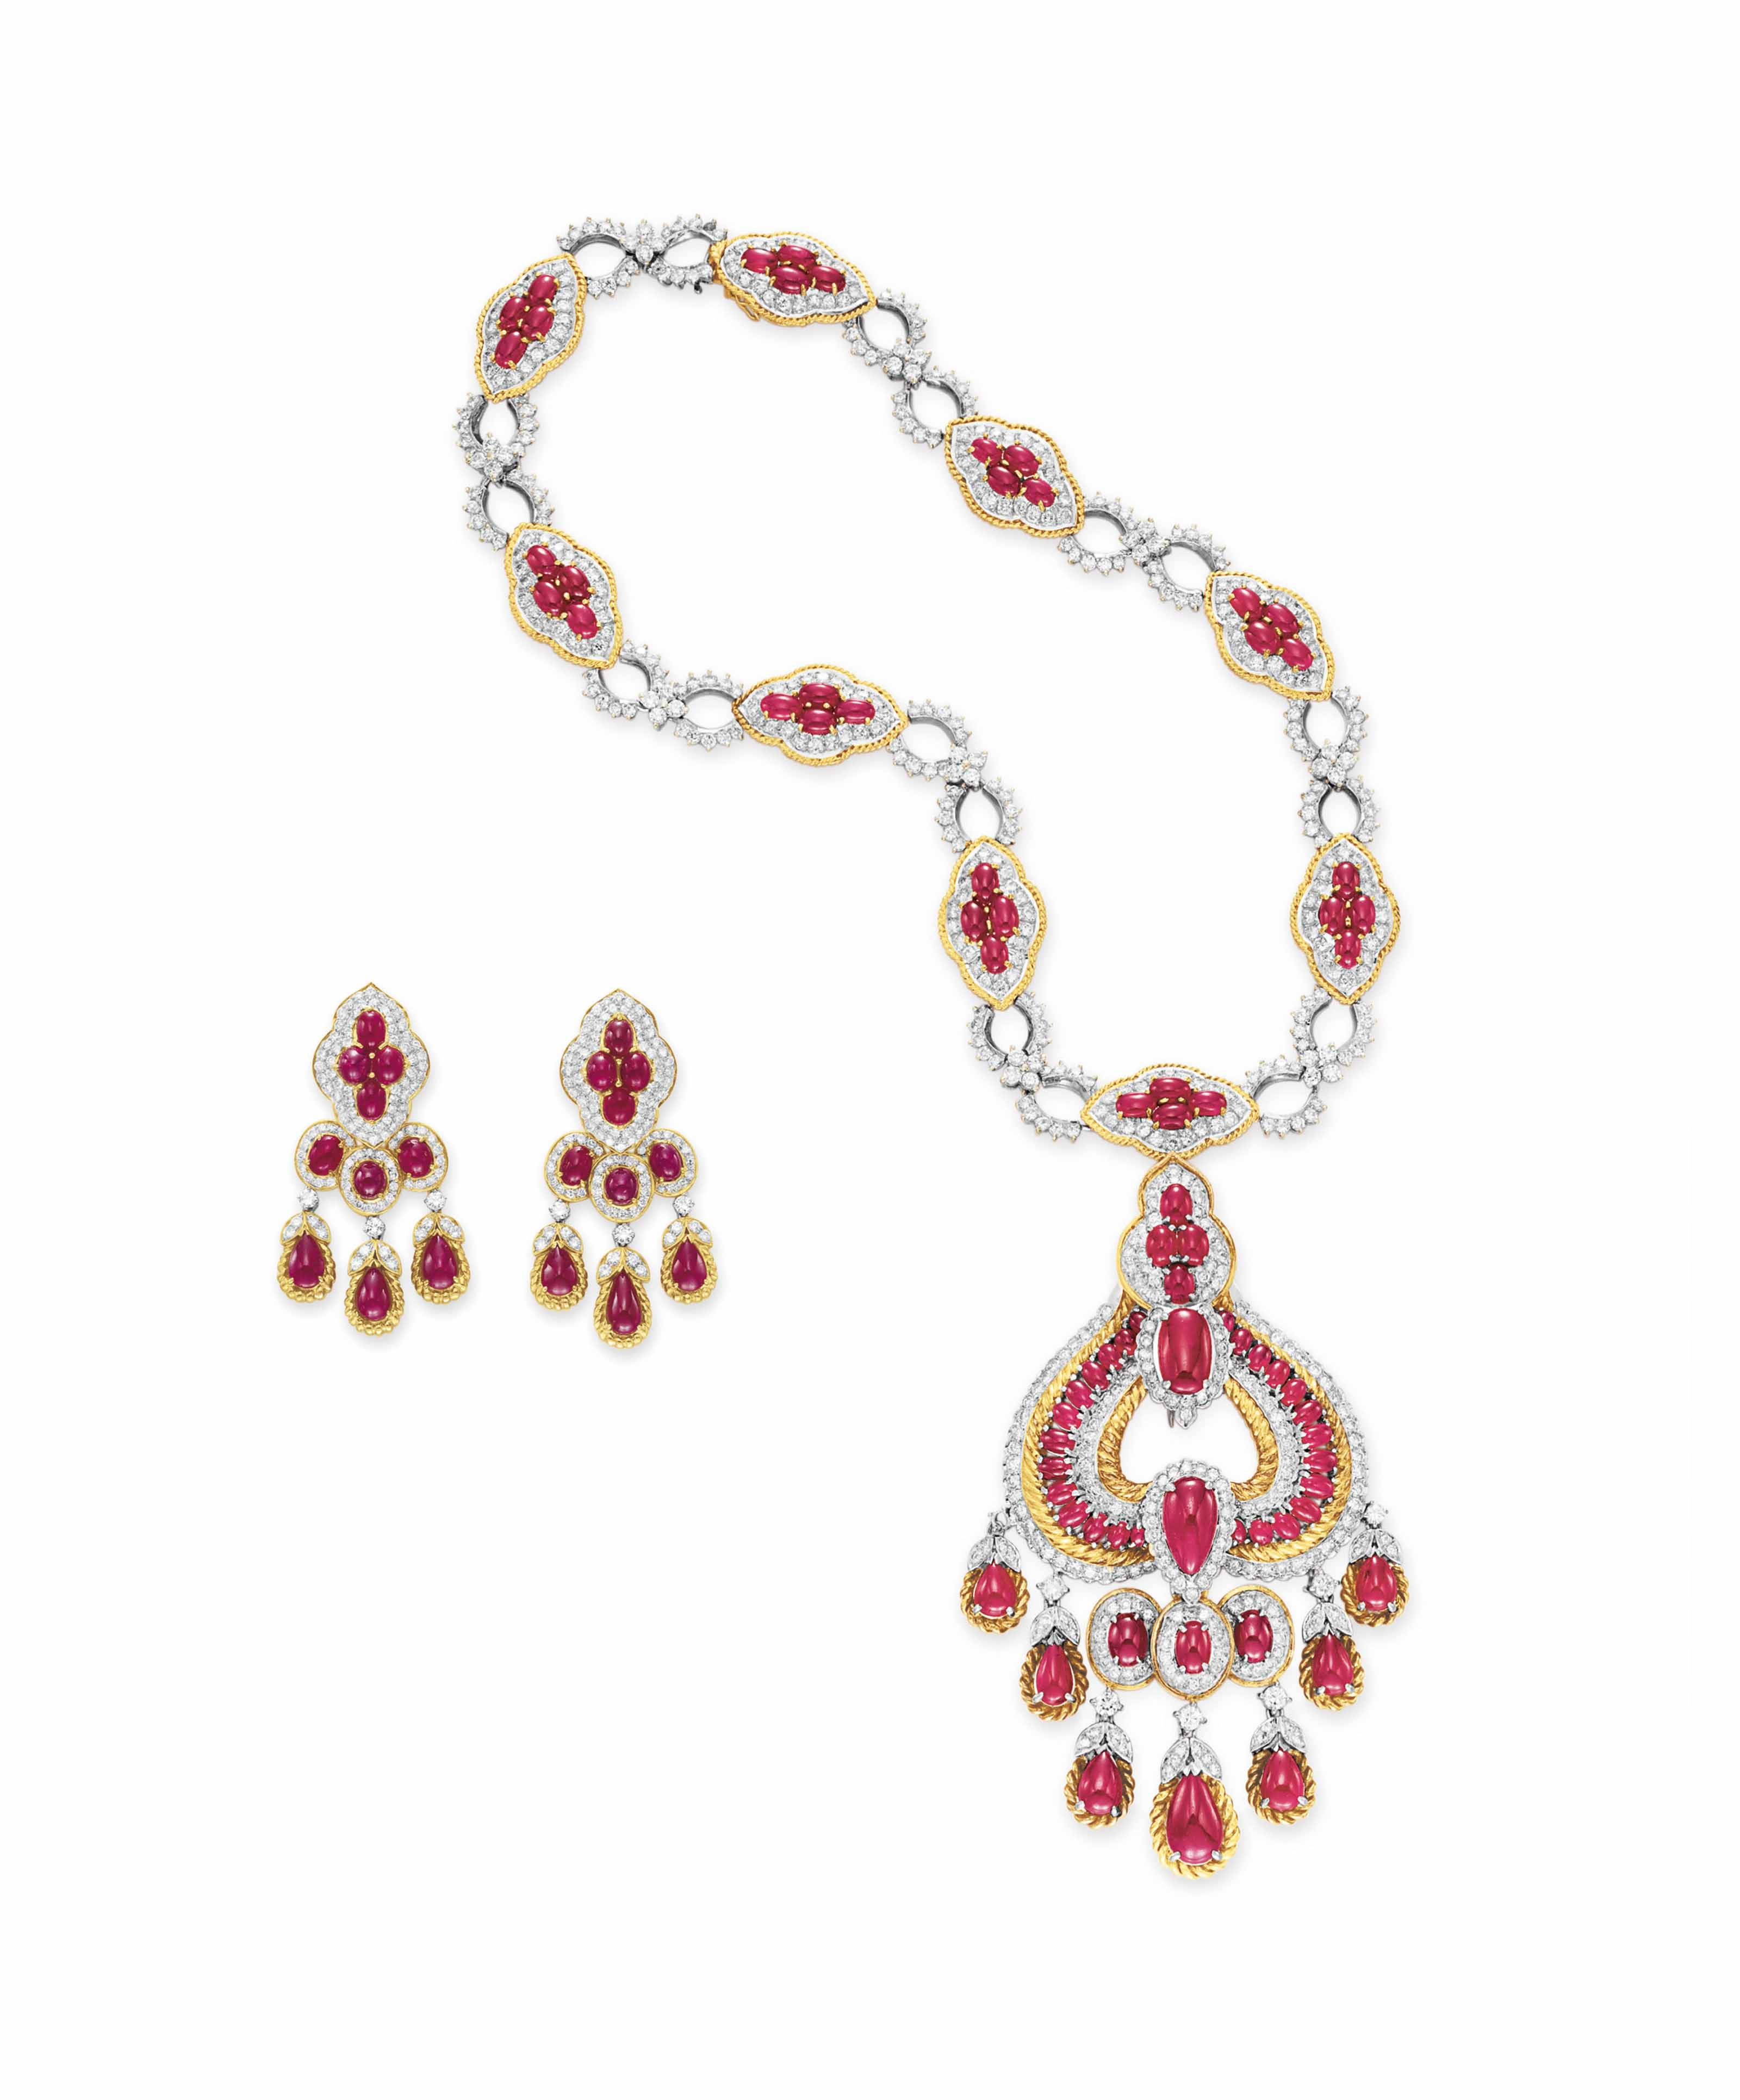 A SET OF RUBY, DIAMOND AND GOLD JEWELRY, BY GUCCI